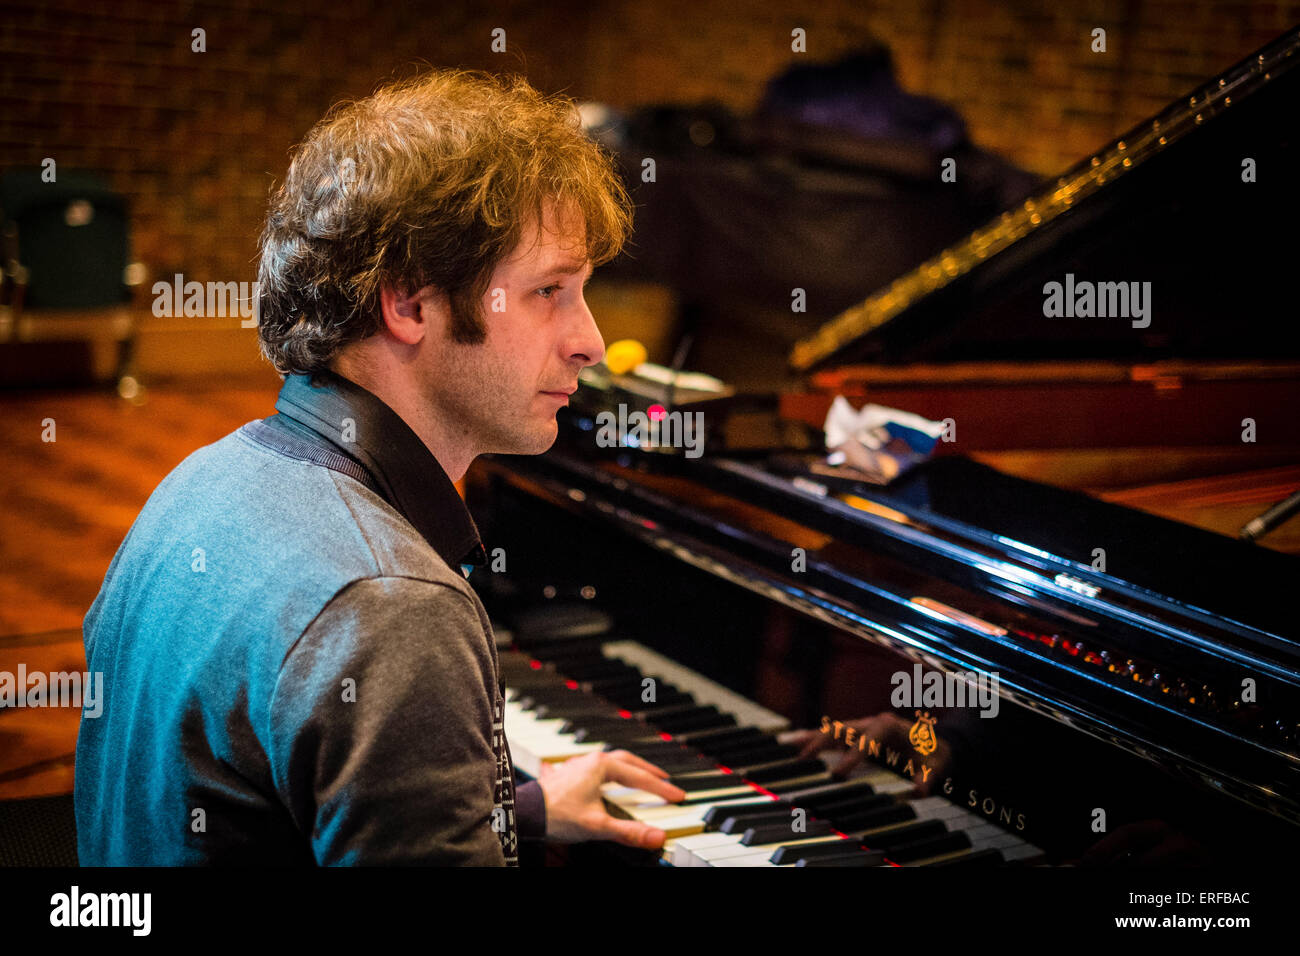 English pianist Ivo Neame during sound checks at the Turner Sims Concert Hall (Southampton, England) - Stock Image